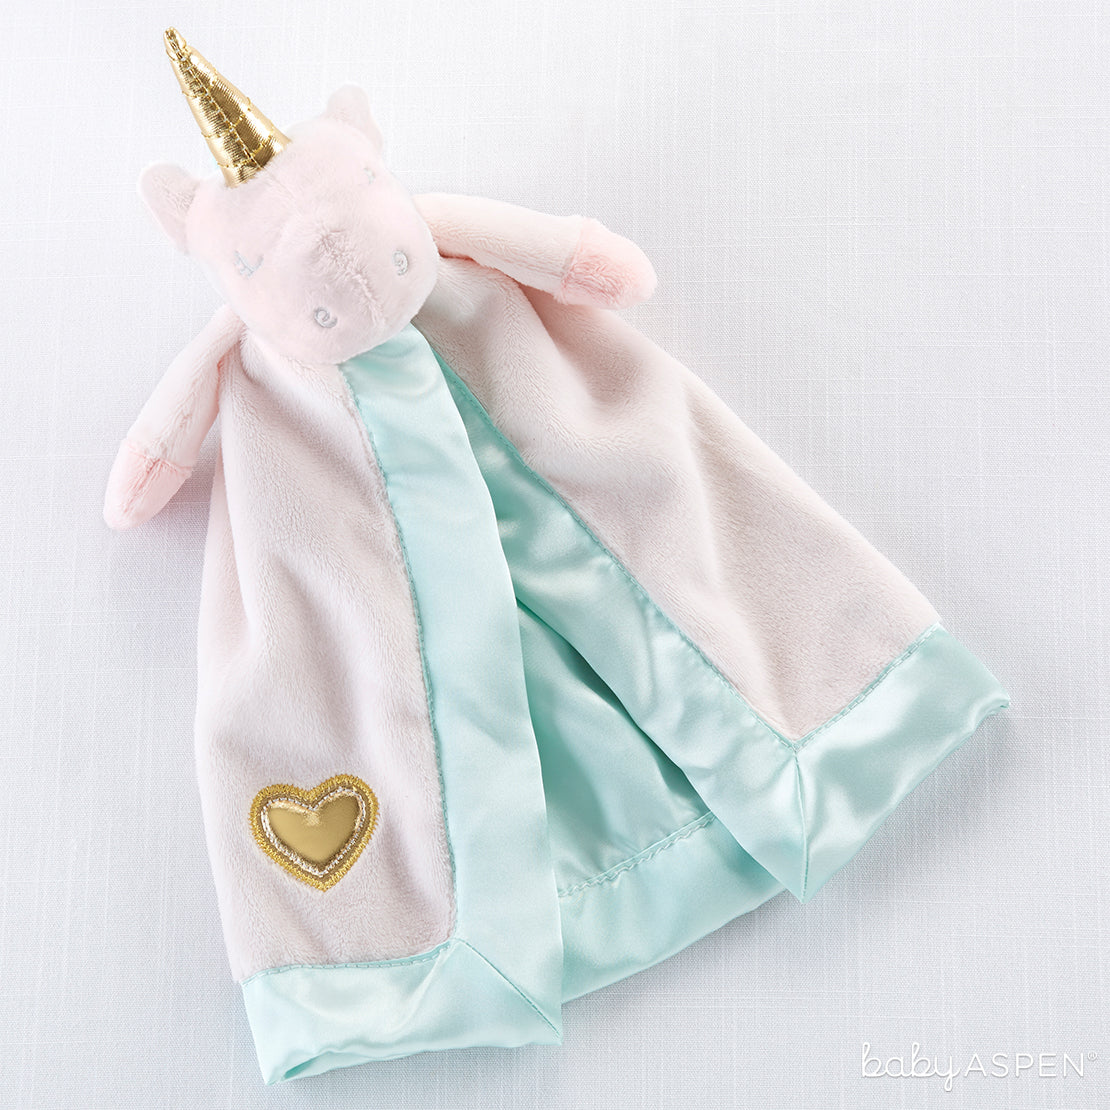 Unicorn Plush Rattle Lovie | Cozy Blankets & Lovies to Warm Baby this Winter | Baby Aspen